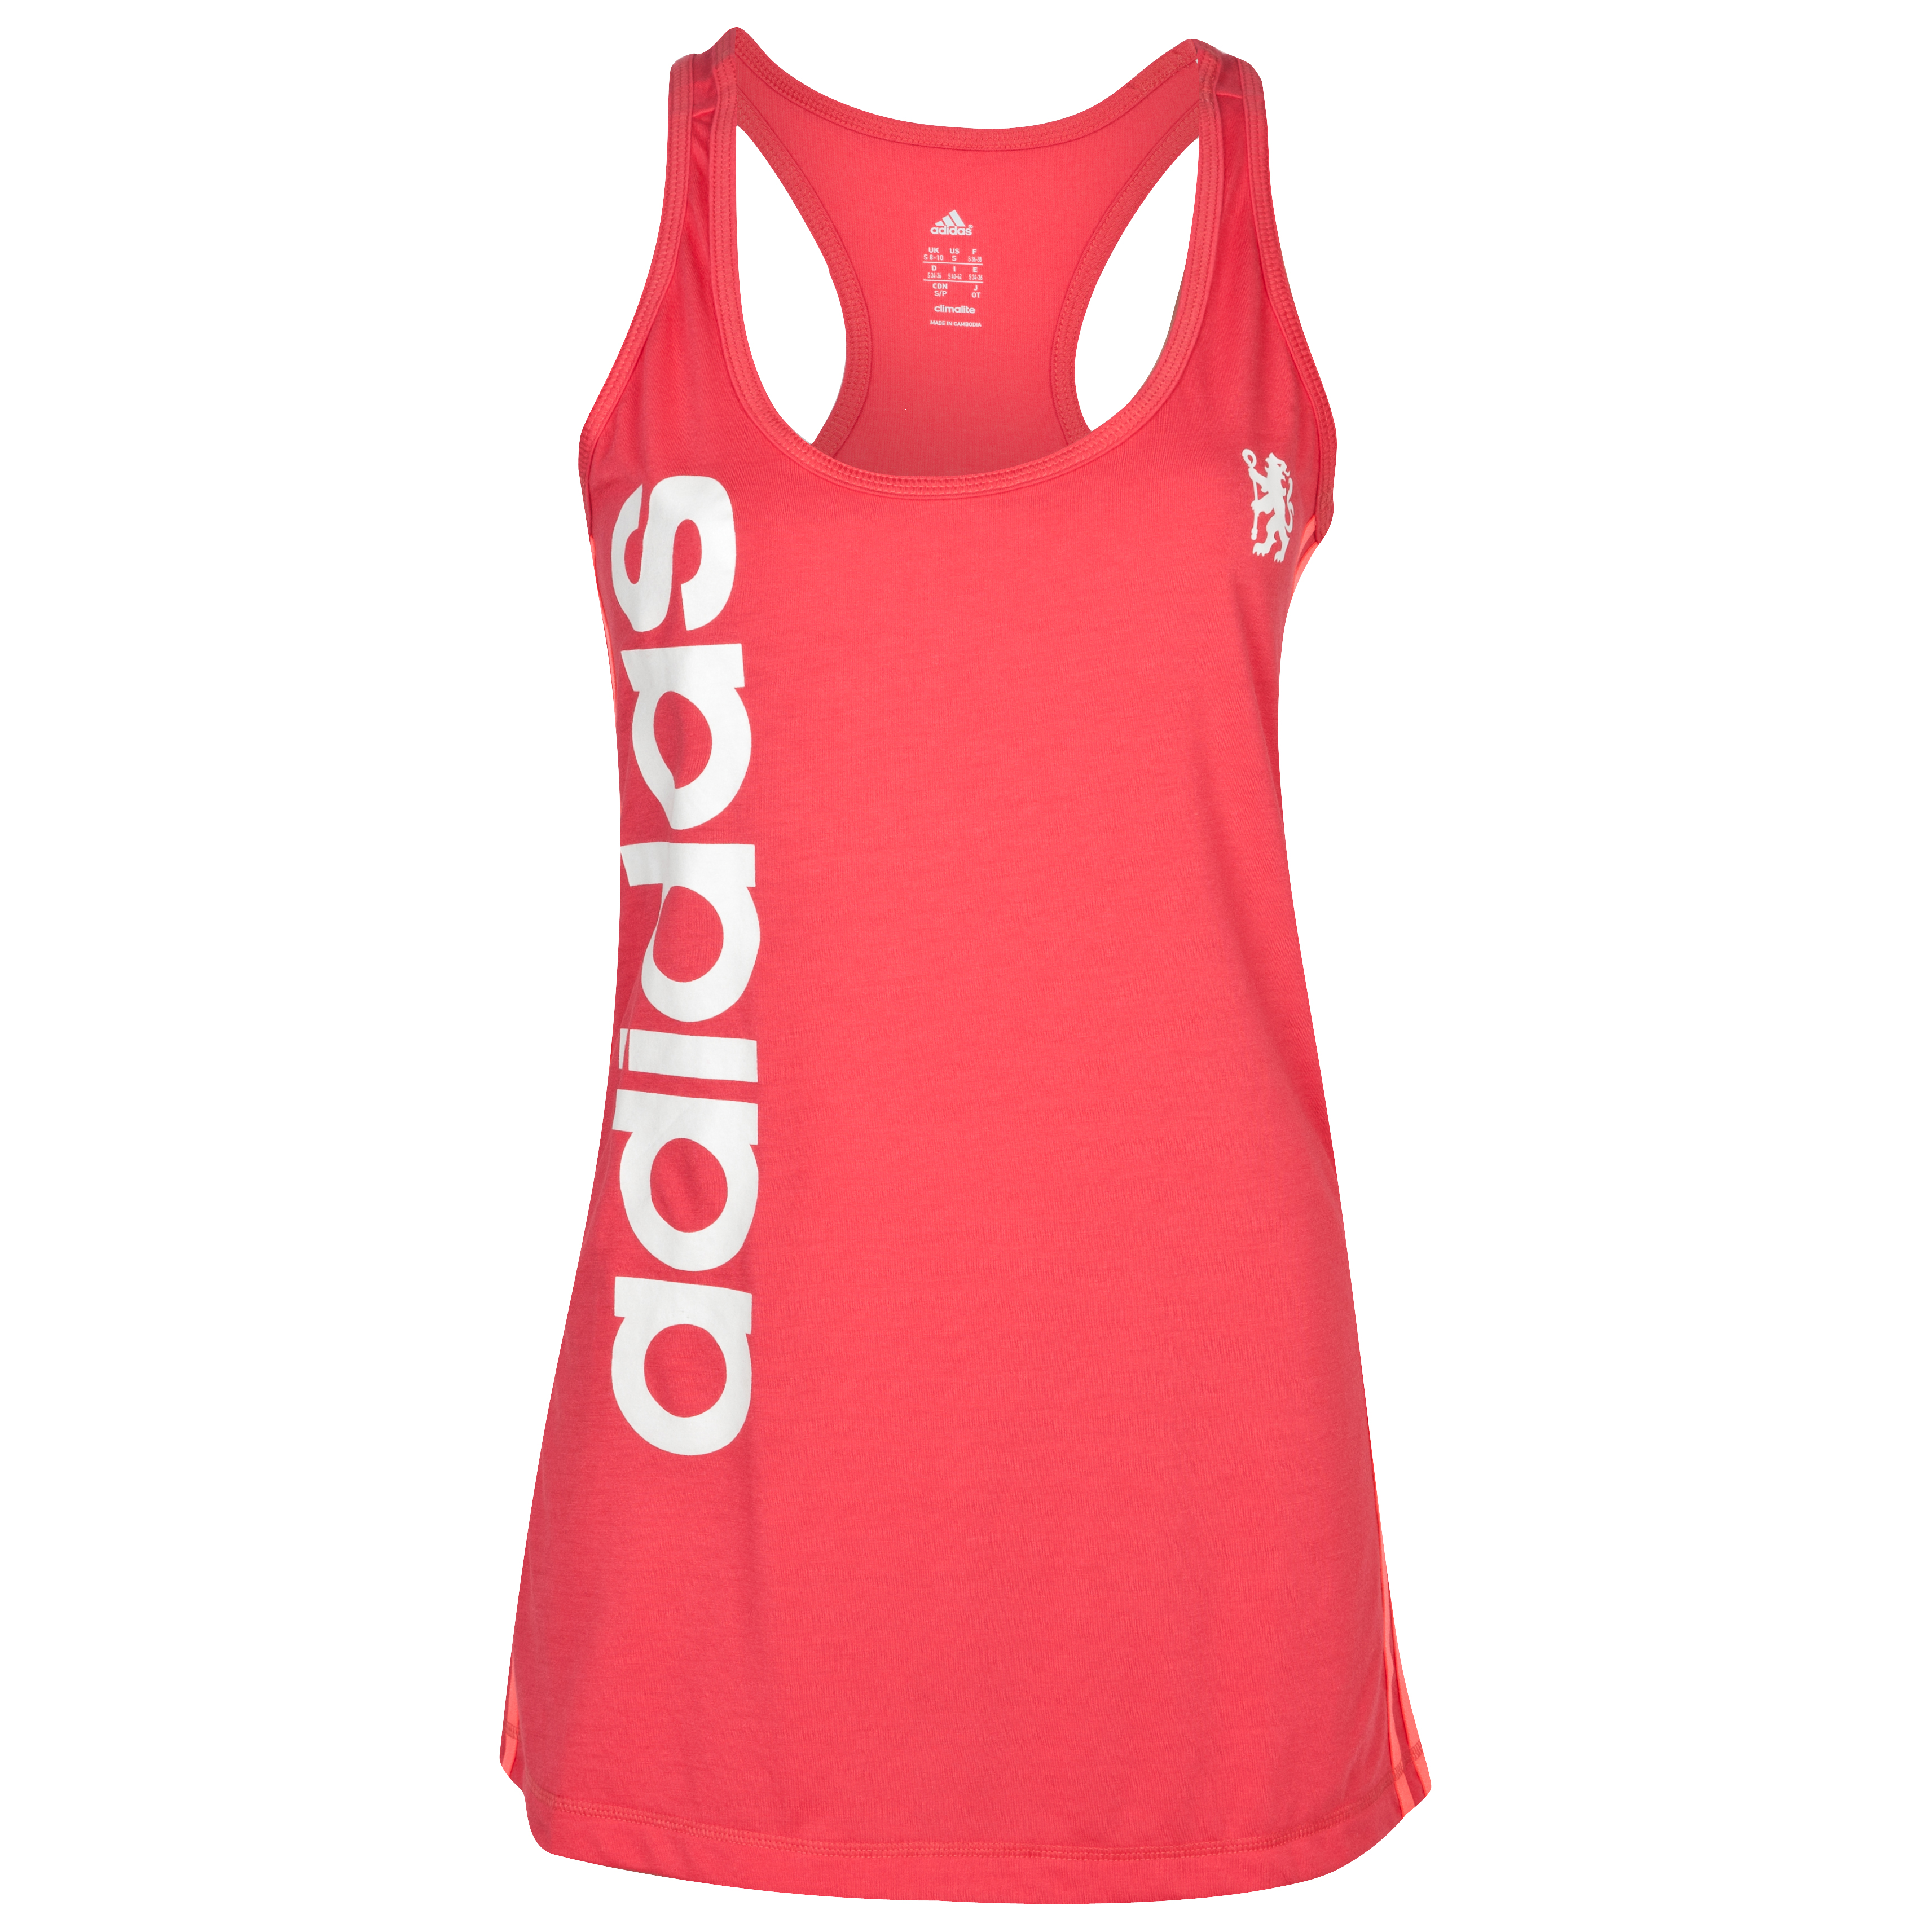 Chelsea Reload Core Tank Top - Womens - Joy